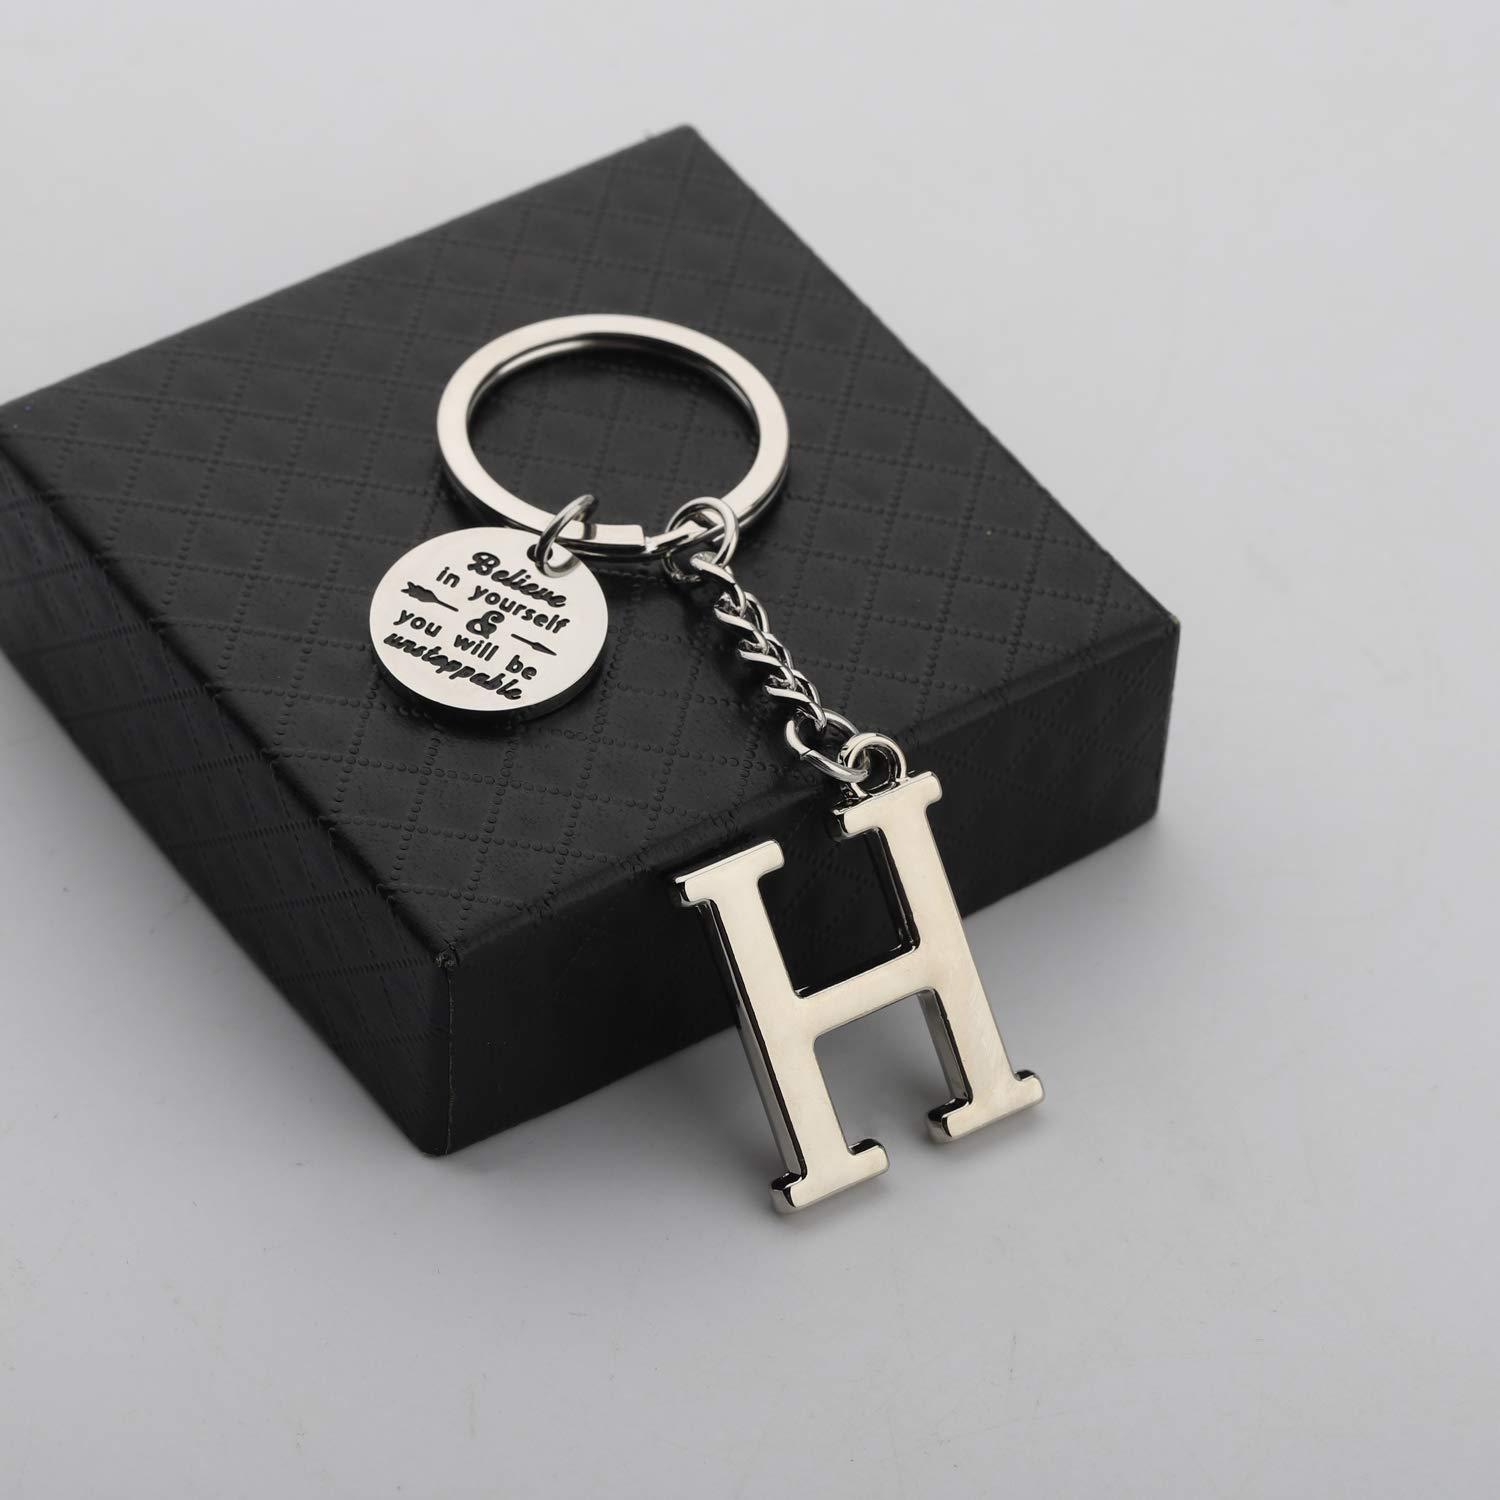 Initial Keychain Alphabet Initial Letter Key Ring Pendant Inspiration Gifts Believe in Yourself and You Will Unstoppable